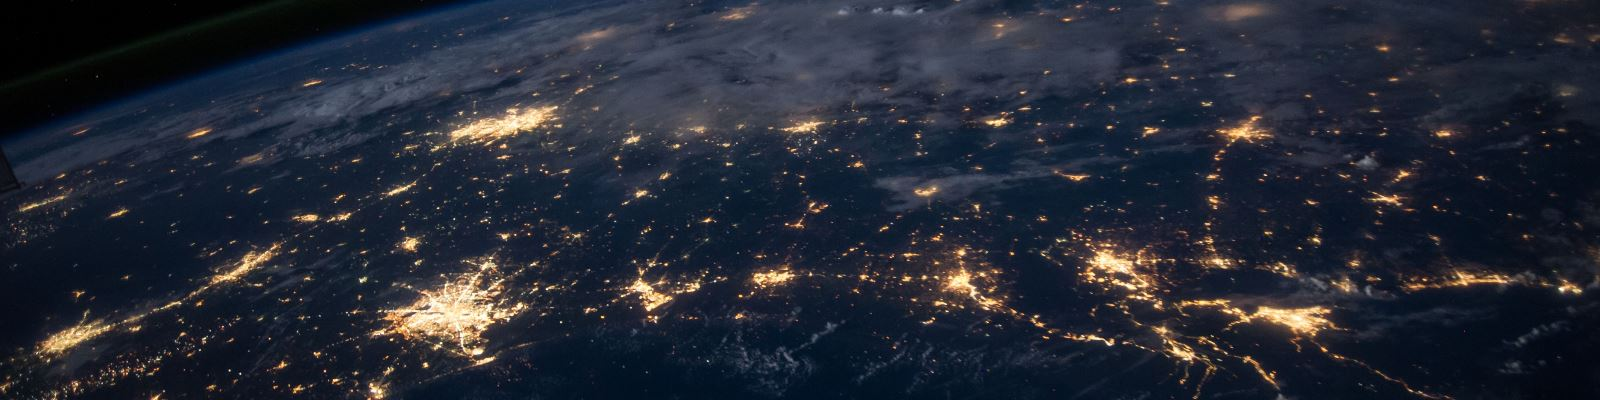 the earth from space, showing lights from cities